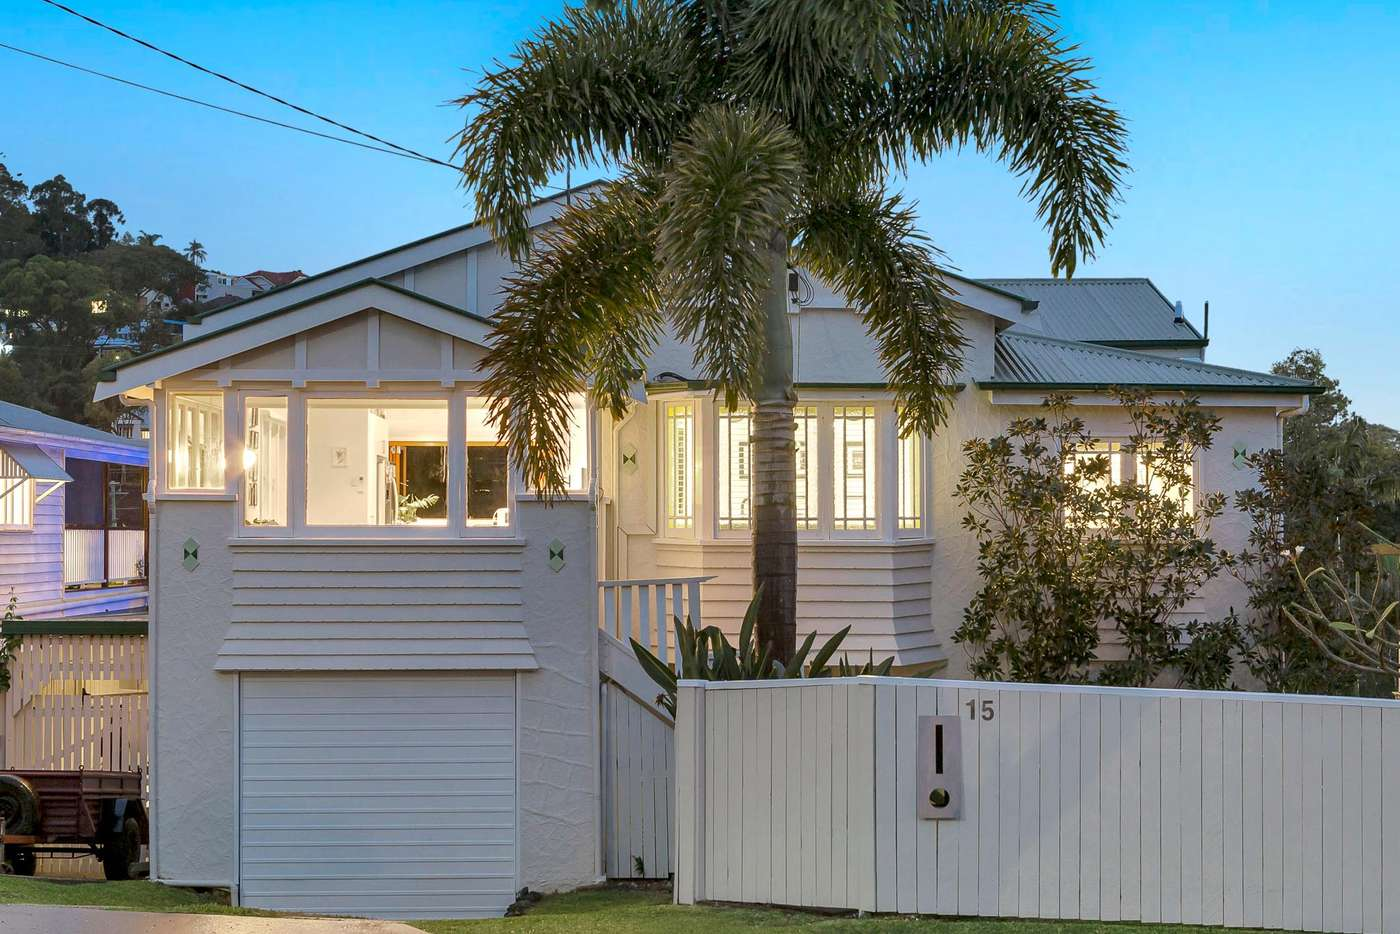 Main view of Homely house listing, 15 Lind Street, Newmarket QLD 4051